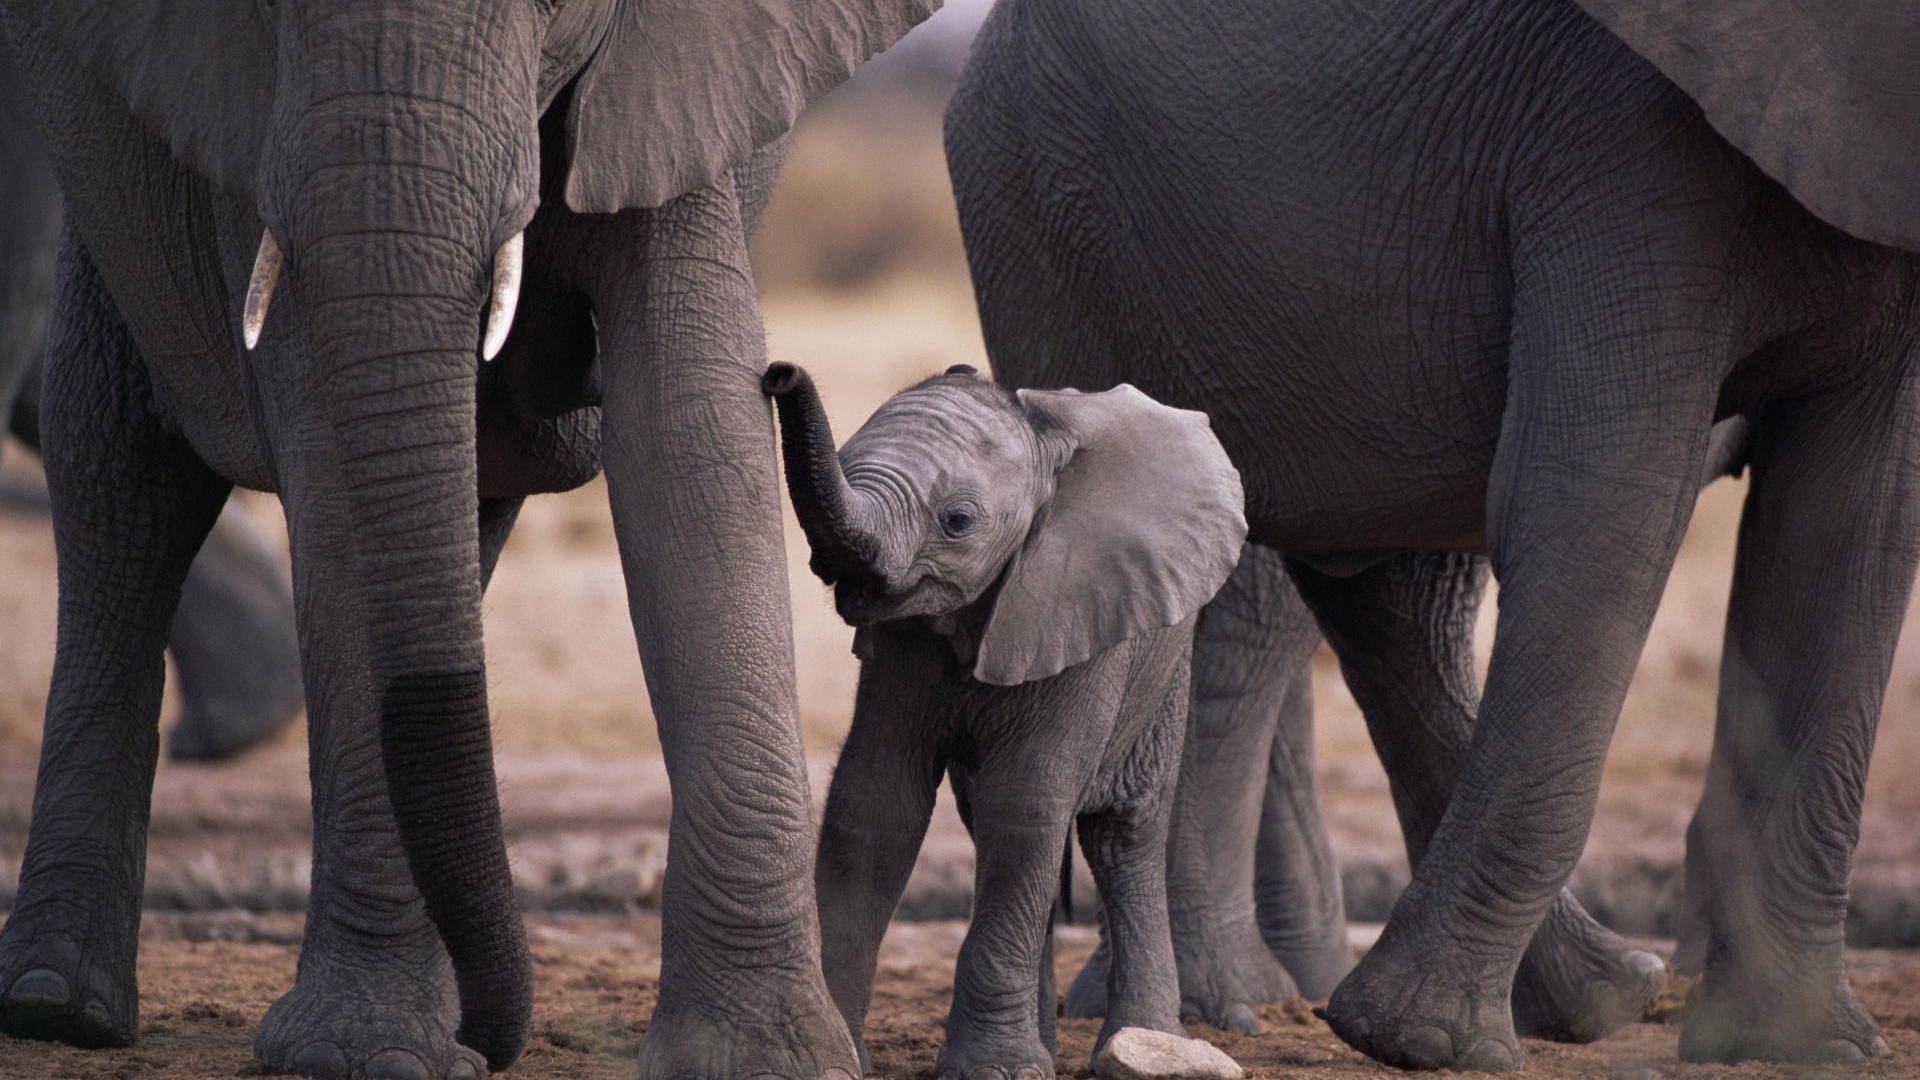 Animals elephants baby elephant HD Wallpaper